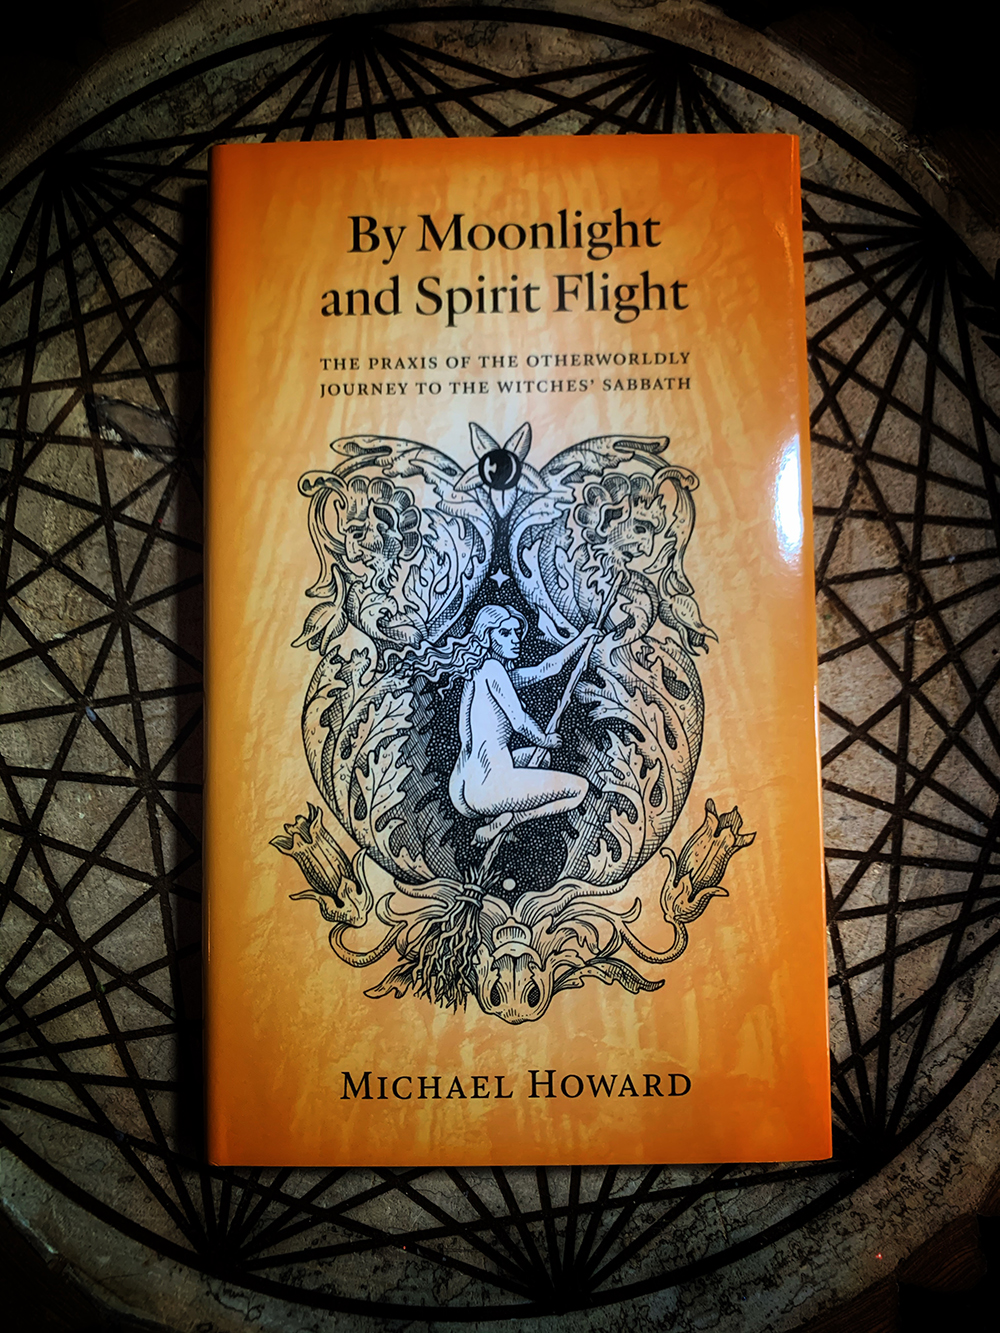 By Moonlight and Spirit Flight